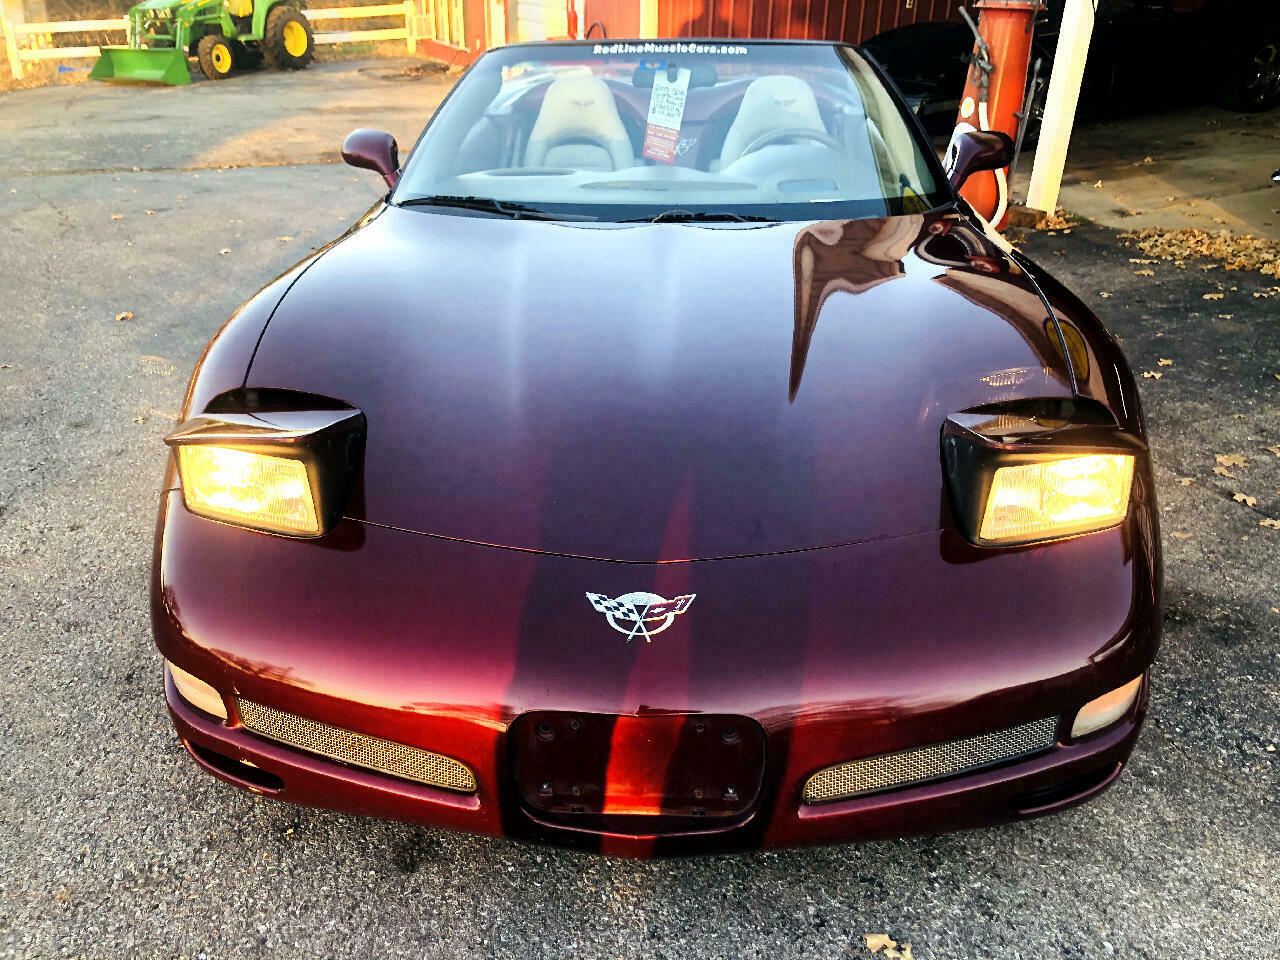 2003 Burgundy Chevrolet Corvette Convertible  | C5 Corvette Photo 7